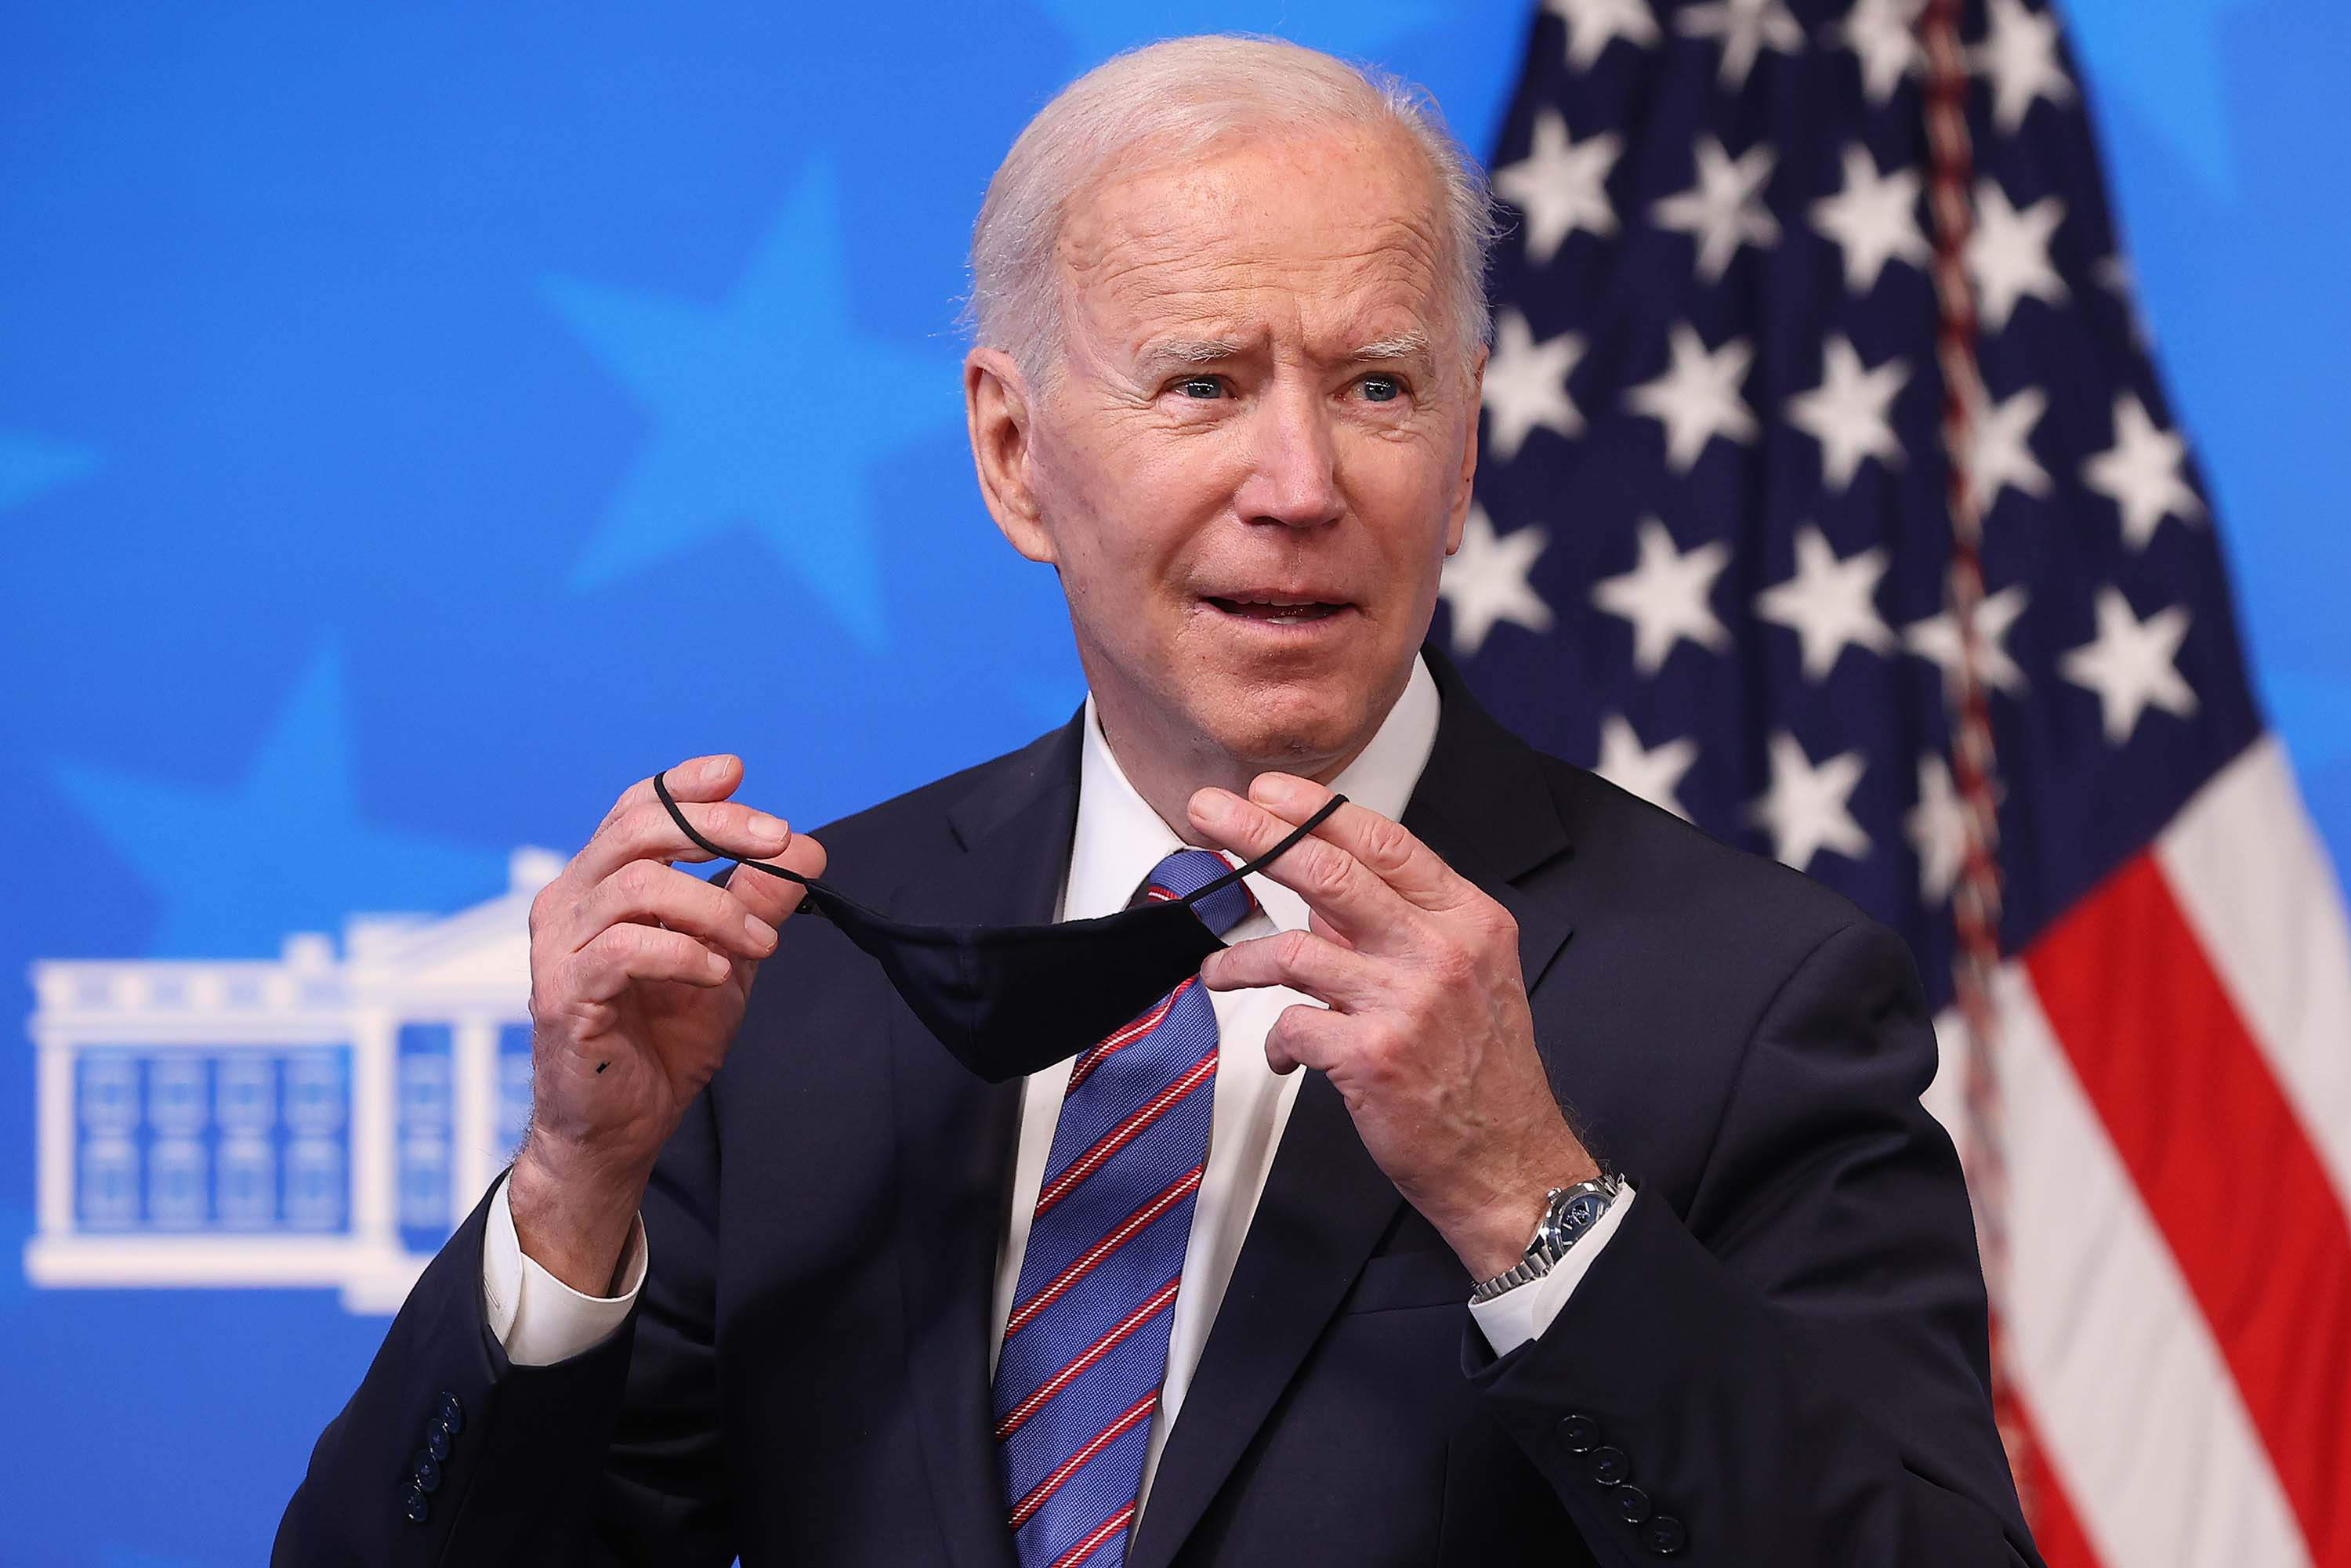 U.S. President Joe Biden replaces his face mask following an event in Washington, DC on March 24.